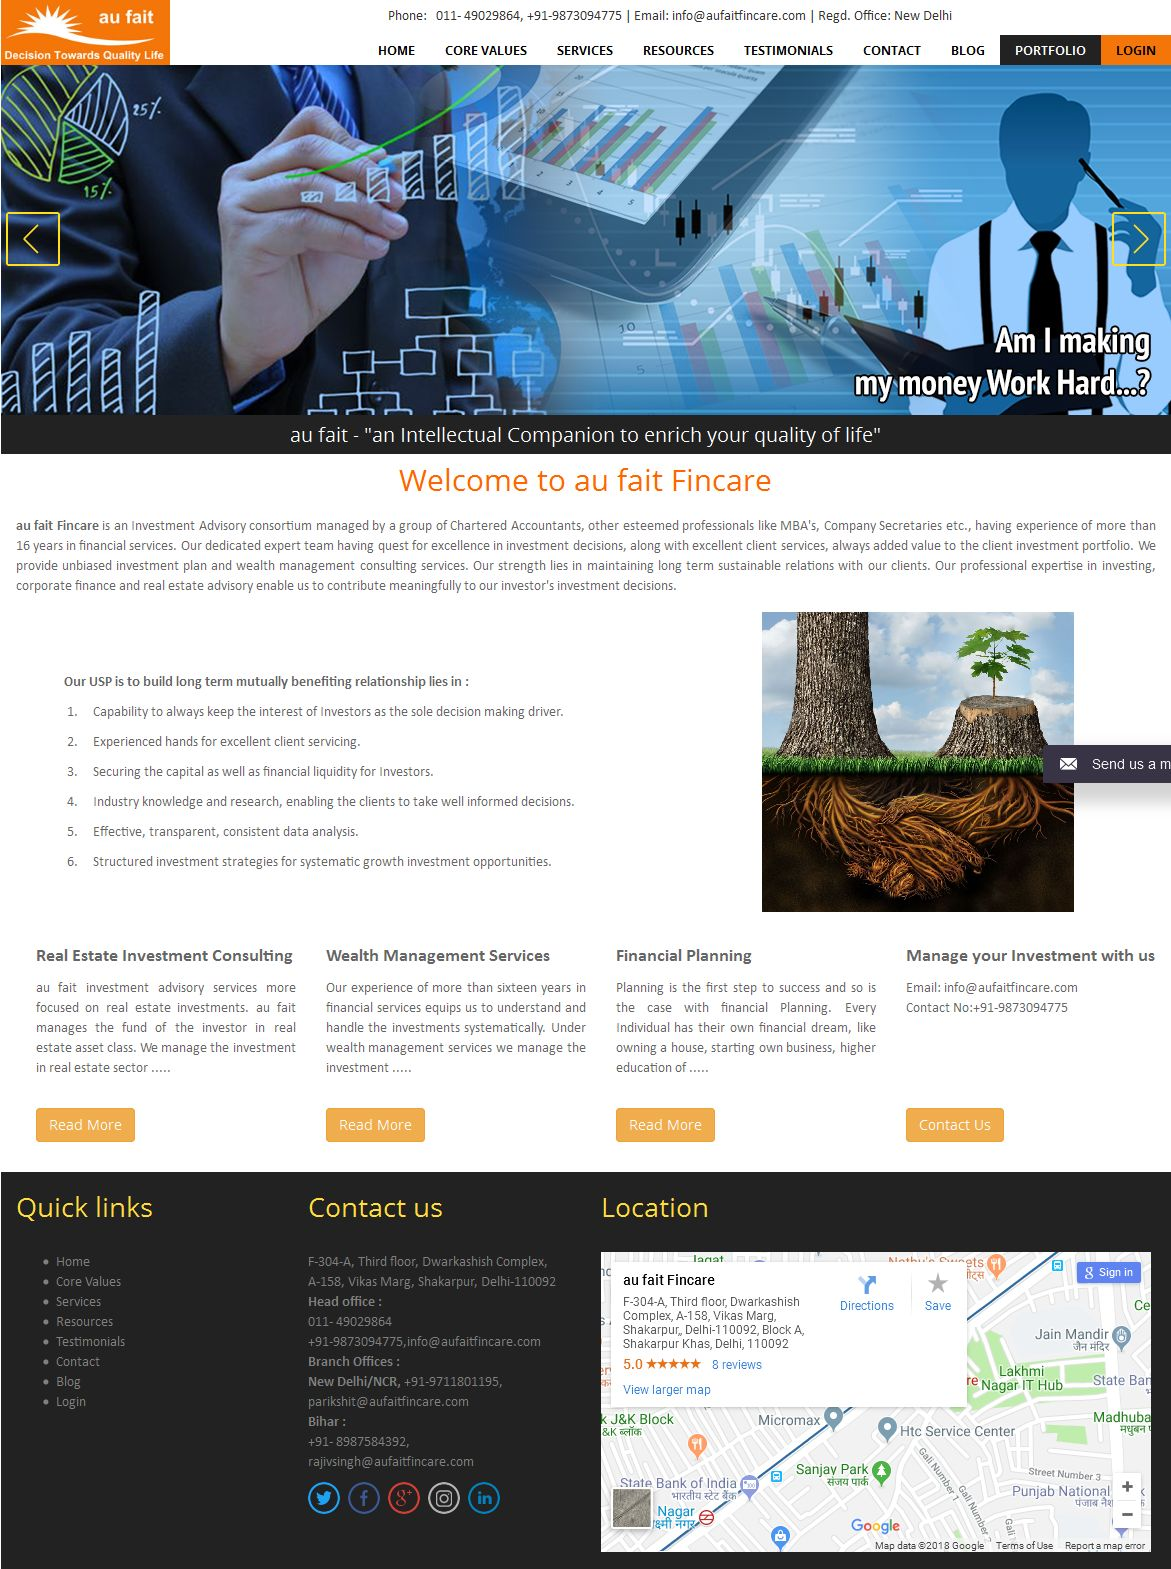 web designing course by professional website designing institute | gmac animation